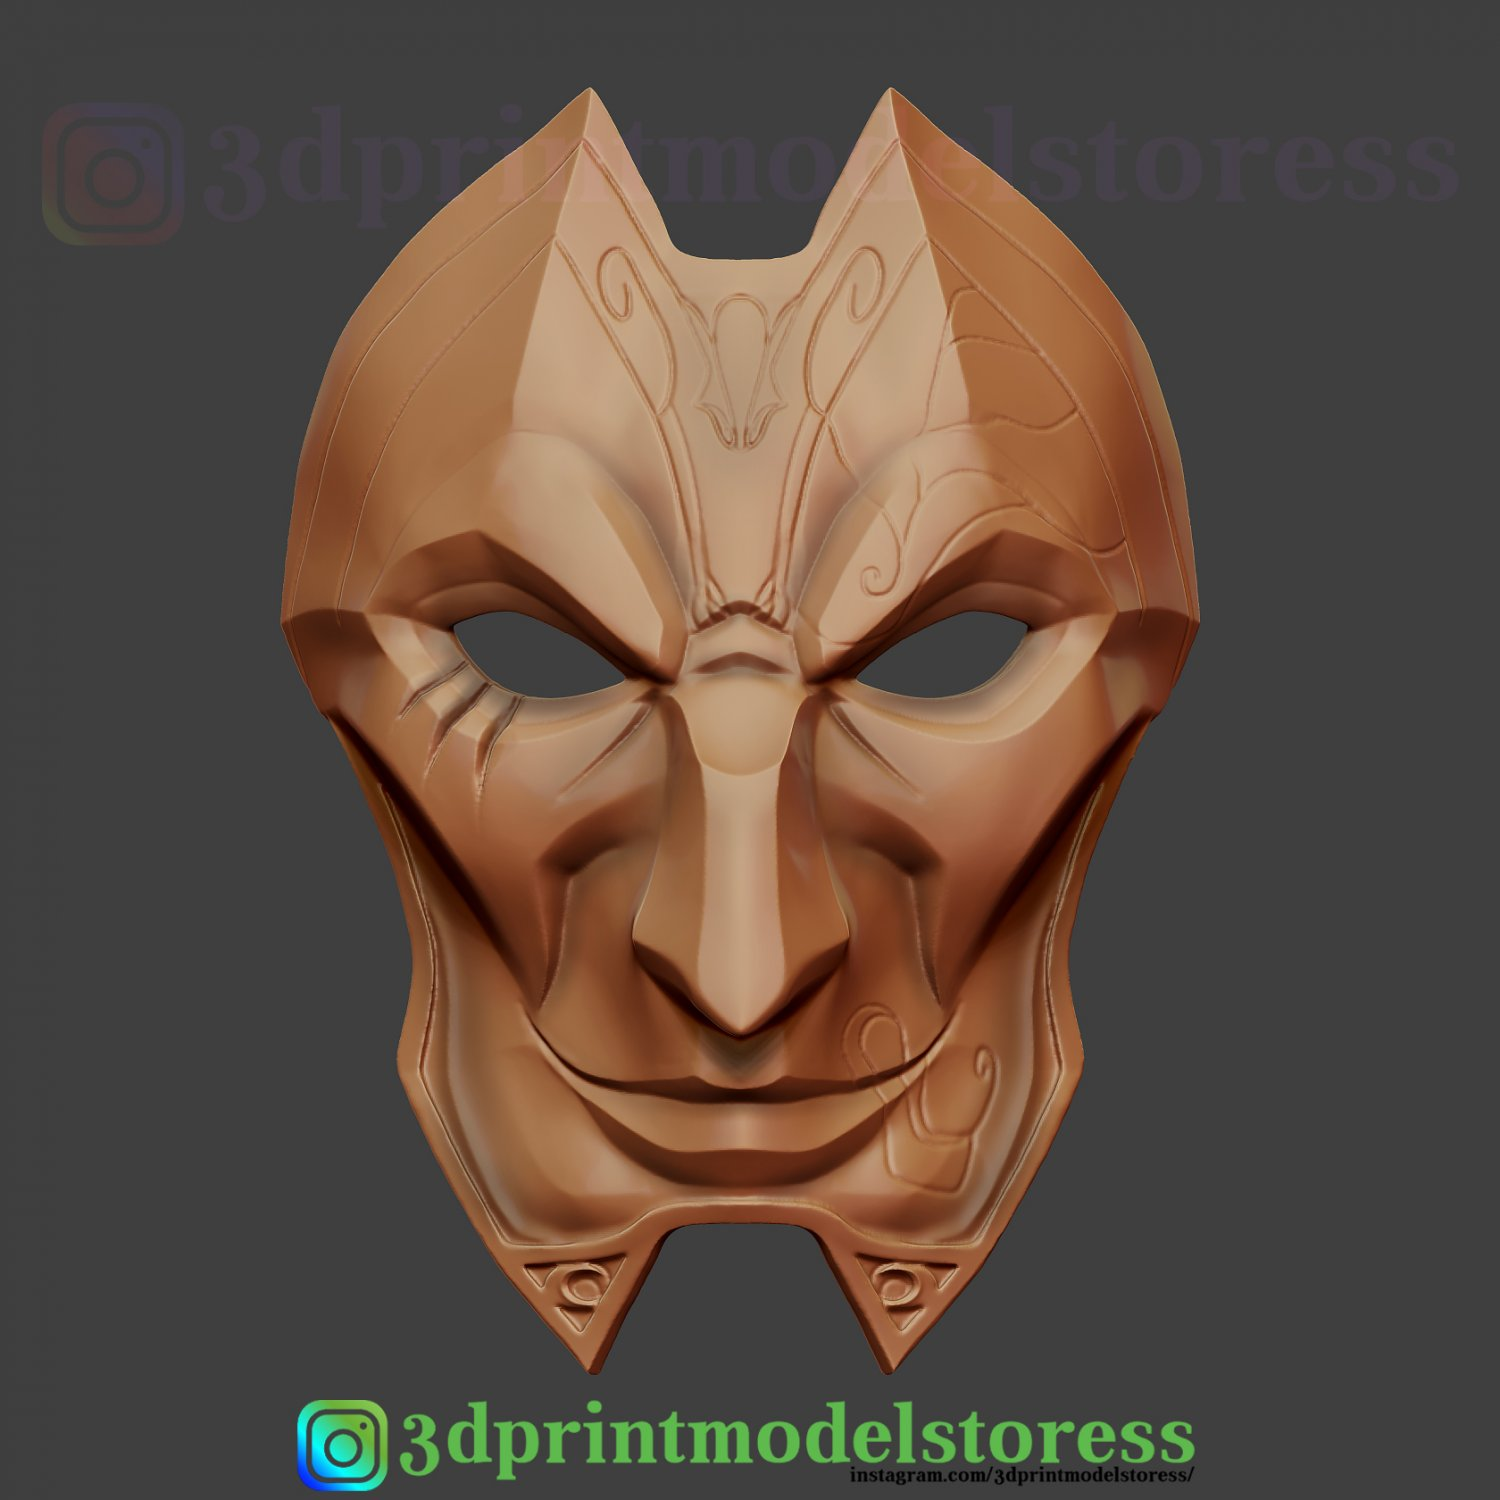 Jhin Full Mask Theatre design 3D Printed Cosplay//Display League of Legends